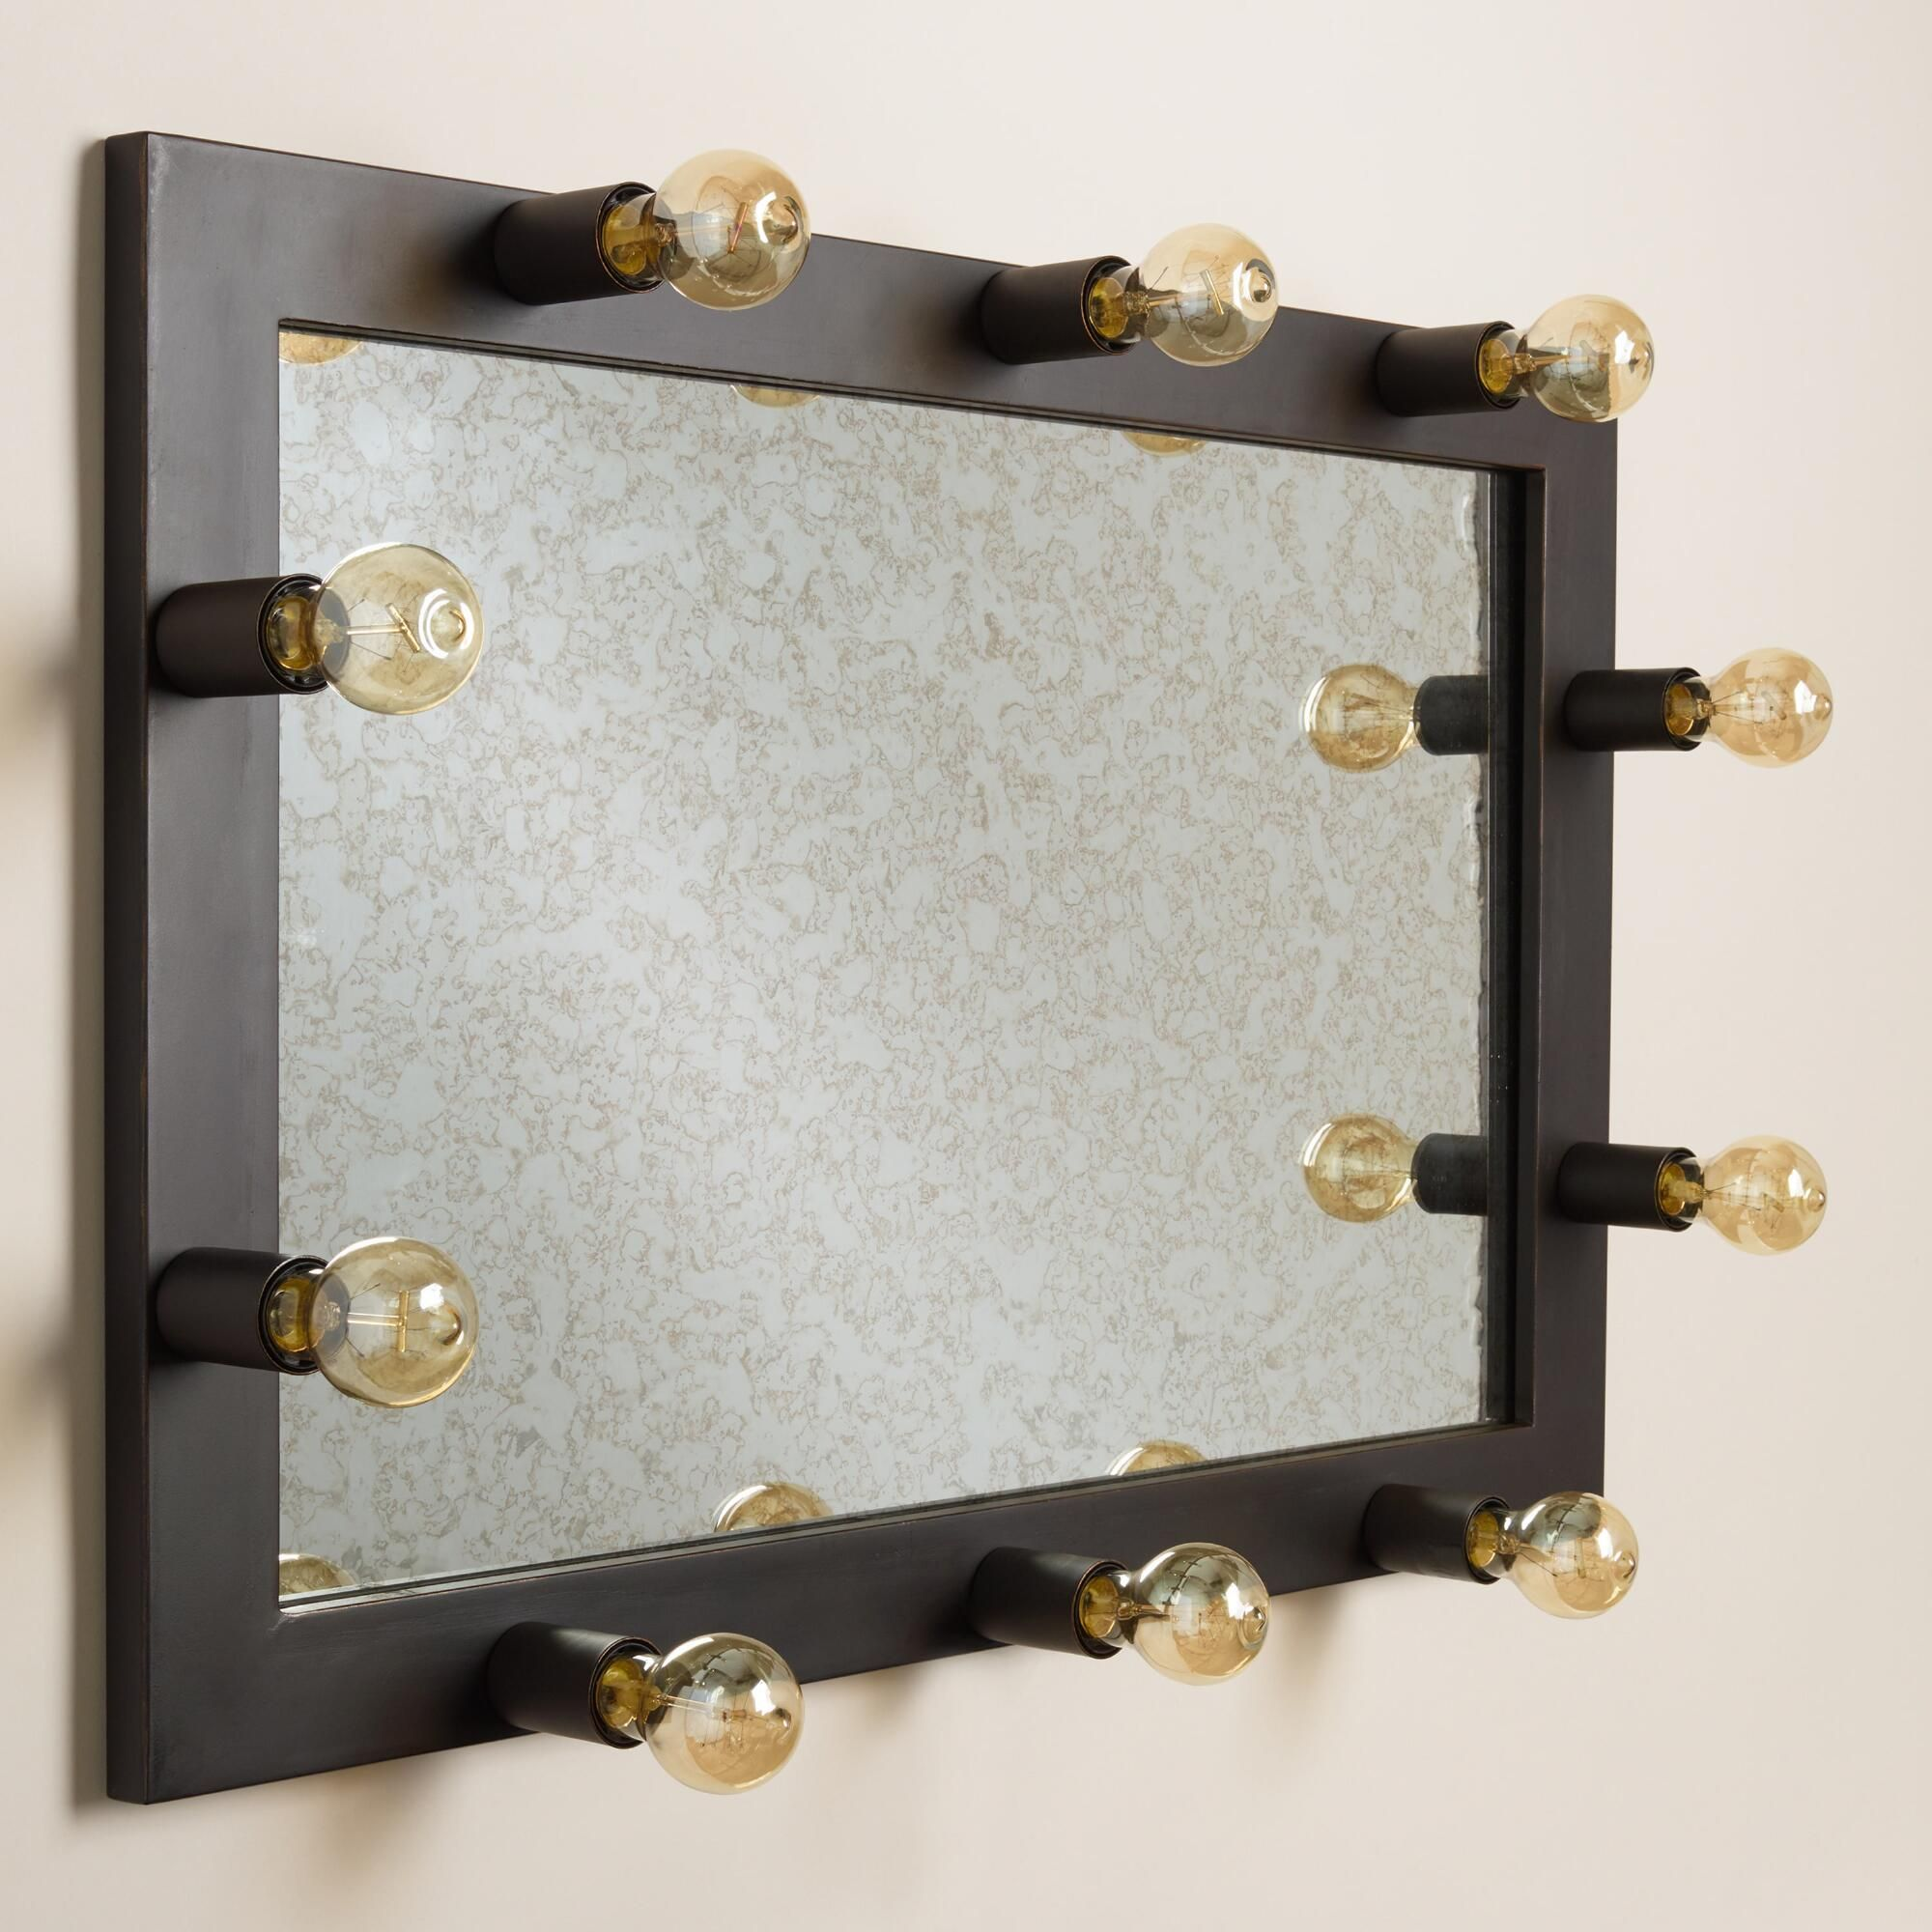 Featuring an antiqued mirror surface framed with 10 Edison-style filament bulbs, our exclusive vanity mirror captures and recreates vintage Hollywood glamour. A fantastic value with all bulbs included, this fun retro accent hangs horizontally on a wall or props vertically on a flat surface.